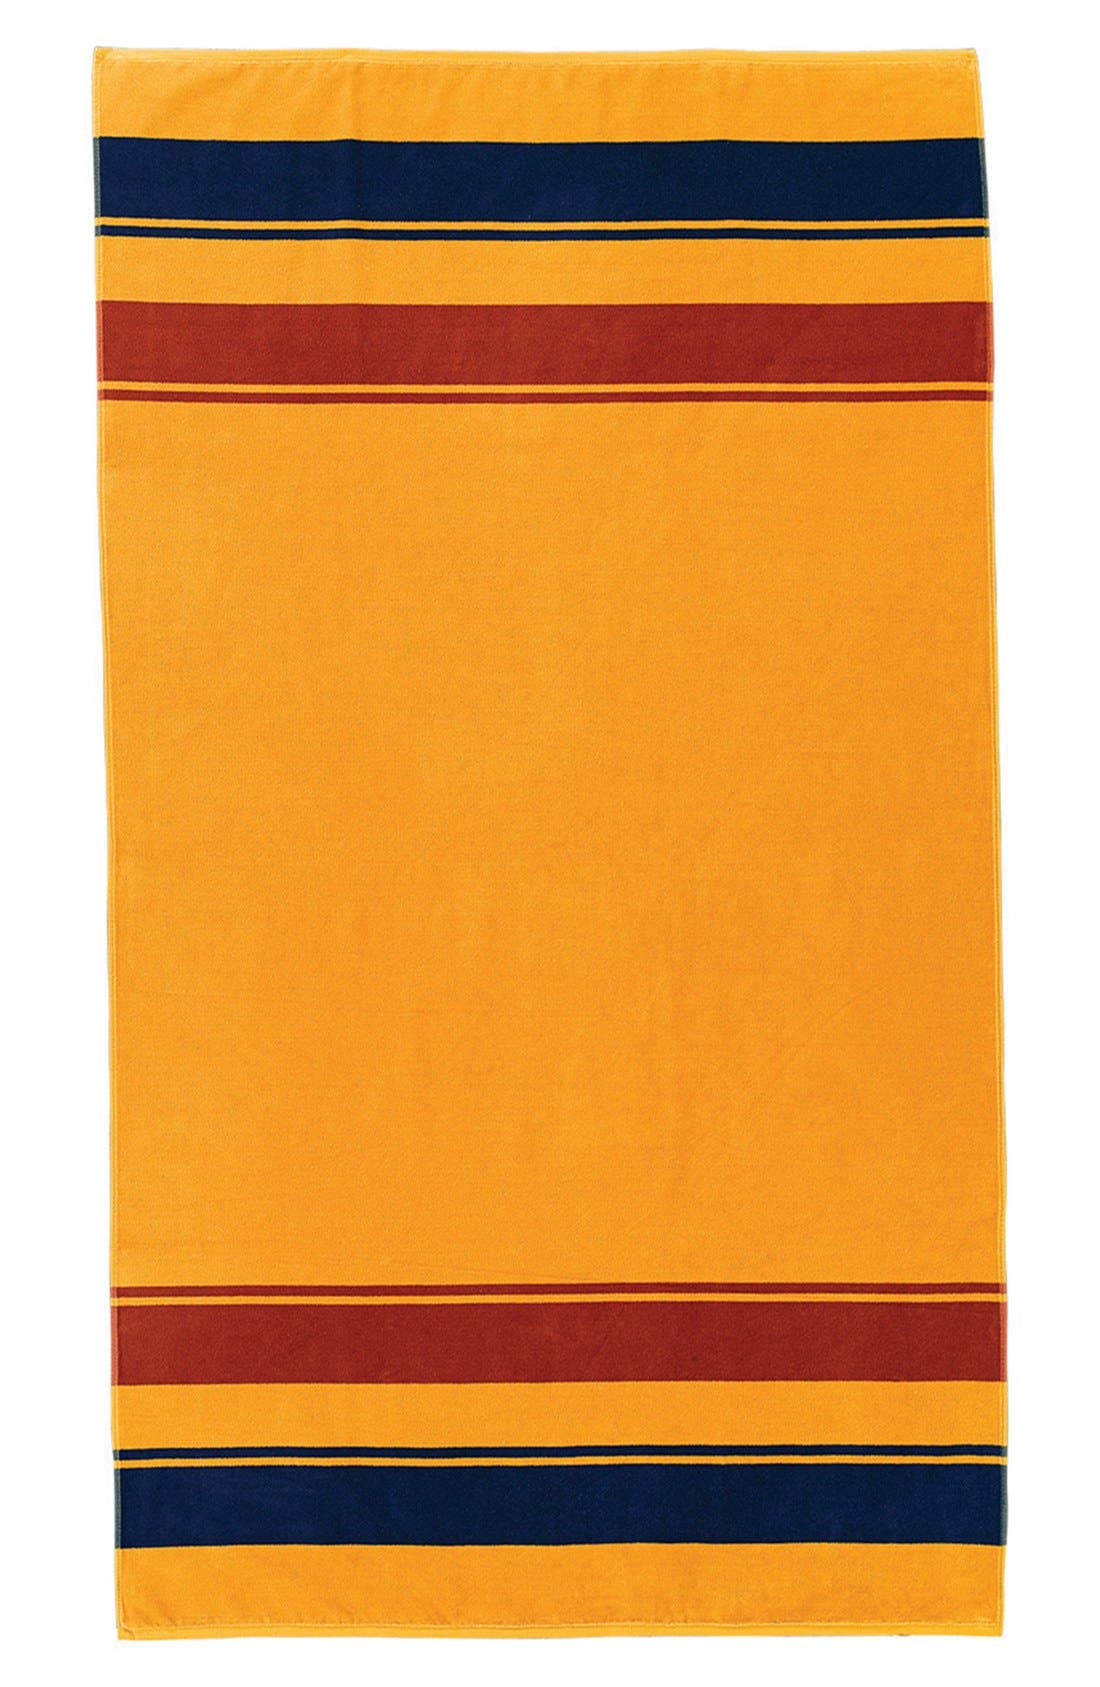 Alternate Image 1 Selected - Pendleton 'National Park' Beach Towel